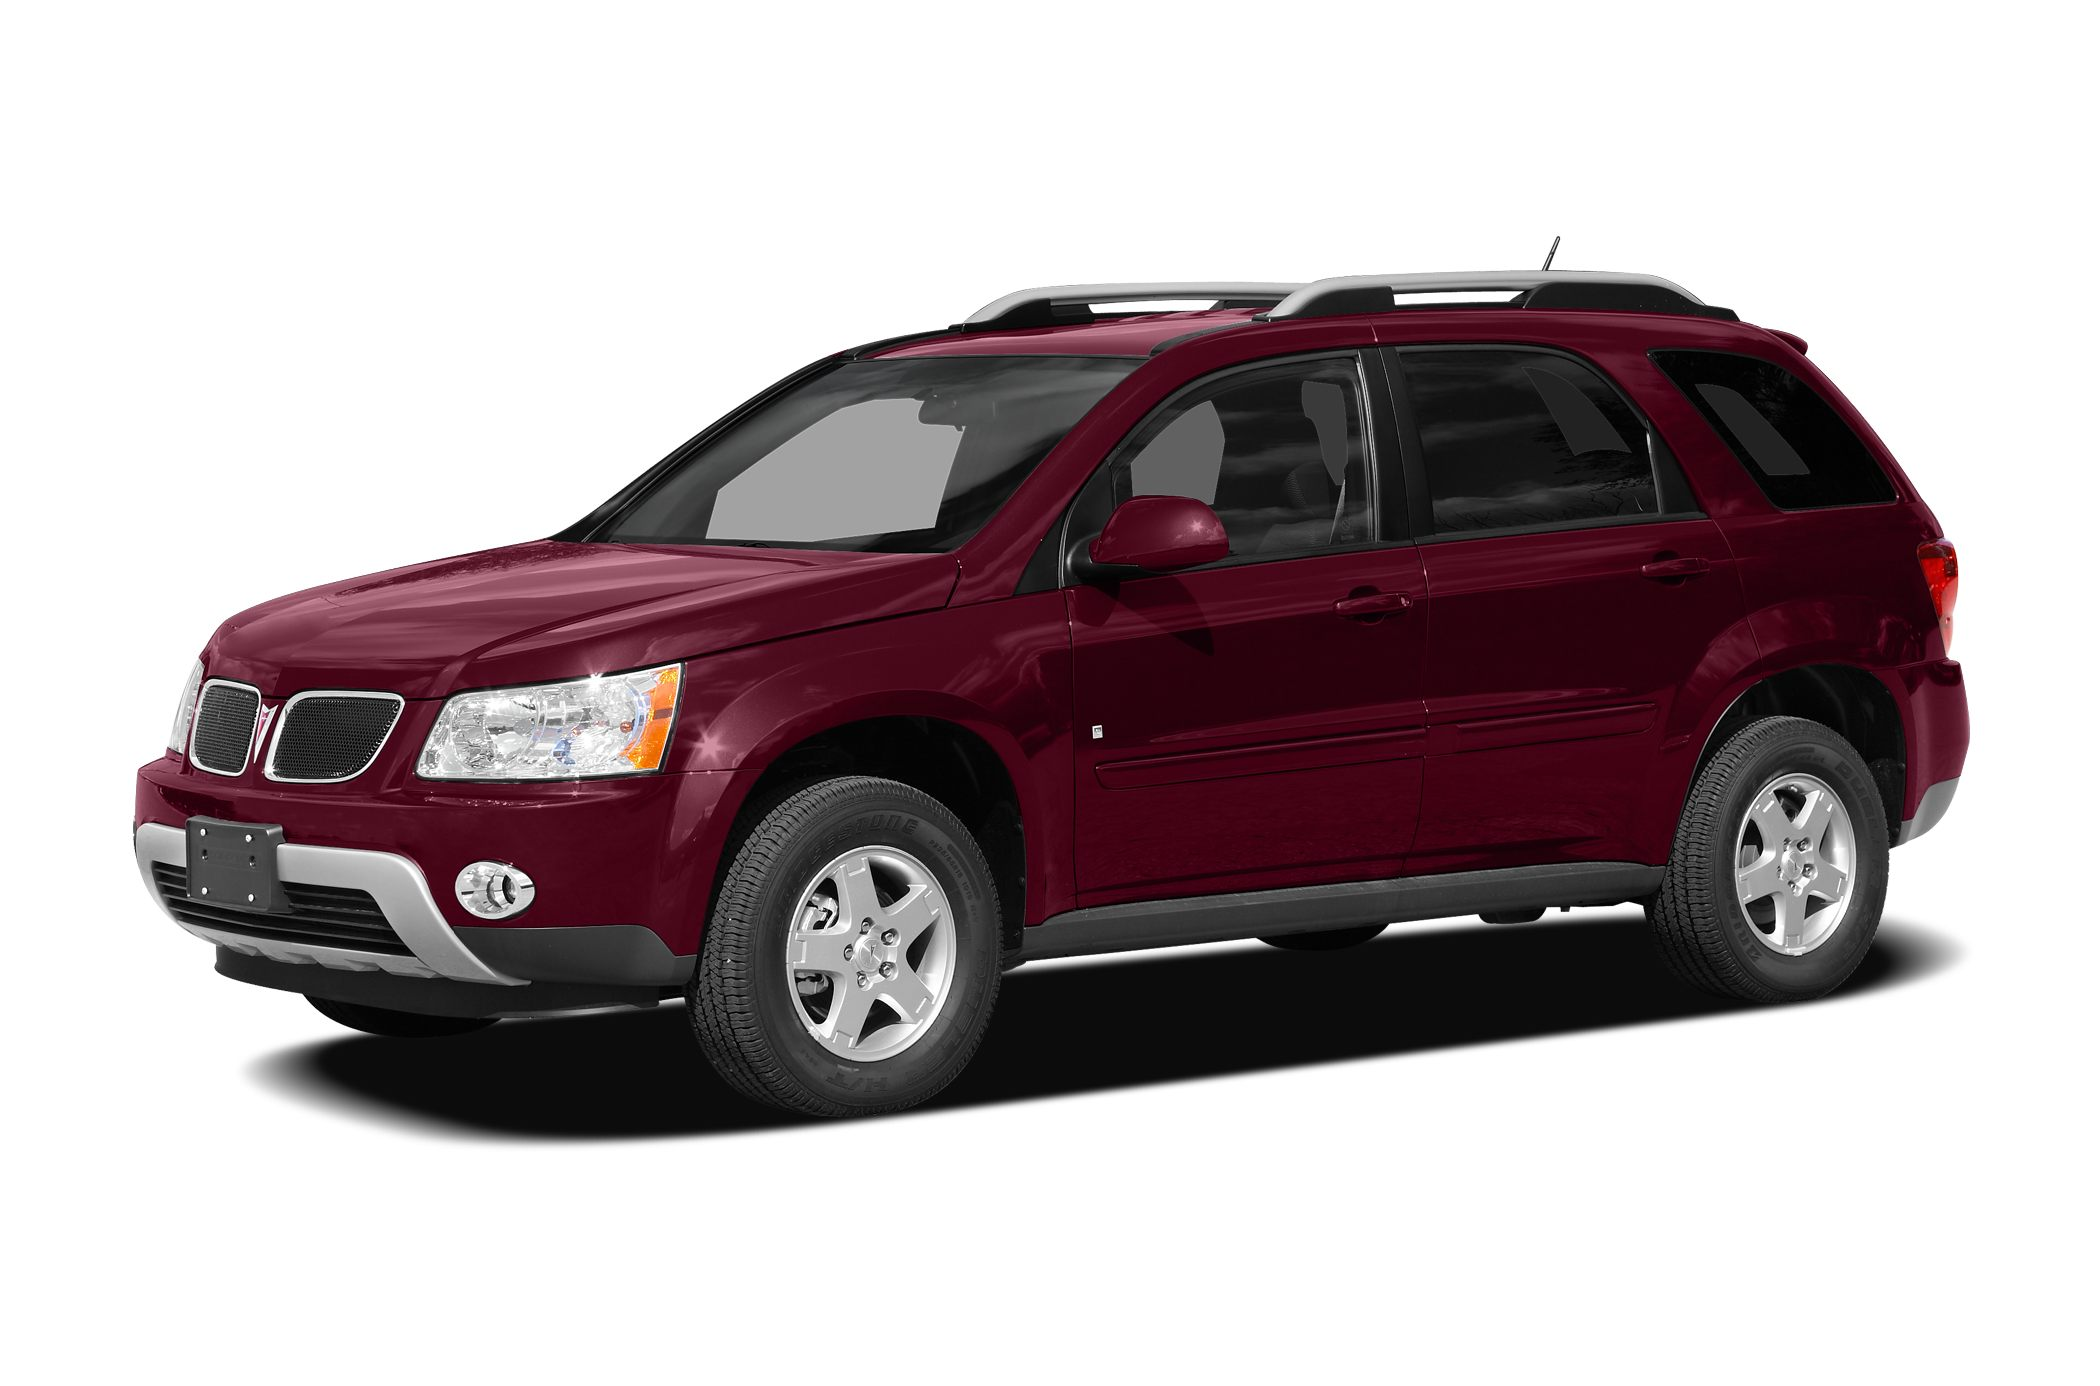 2009 Pontiac Torrent SUV for sale in New Bern for $0 with 111,814 miles